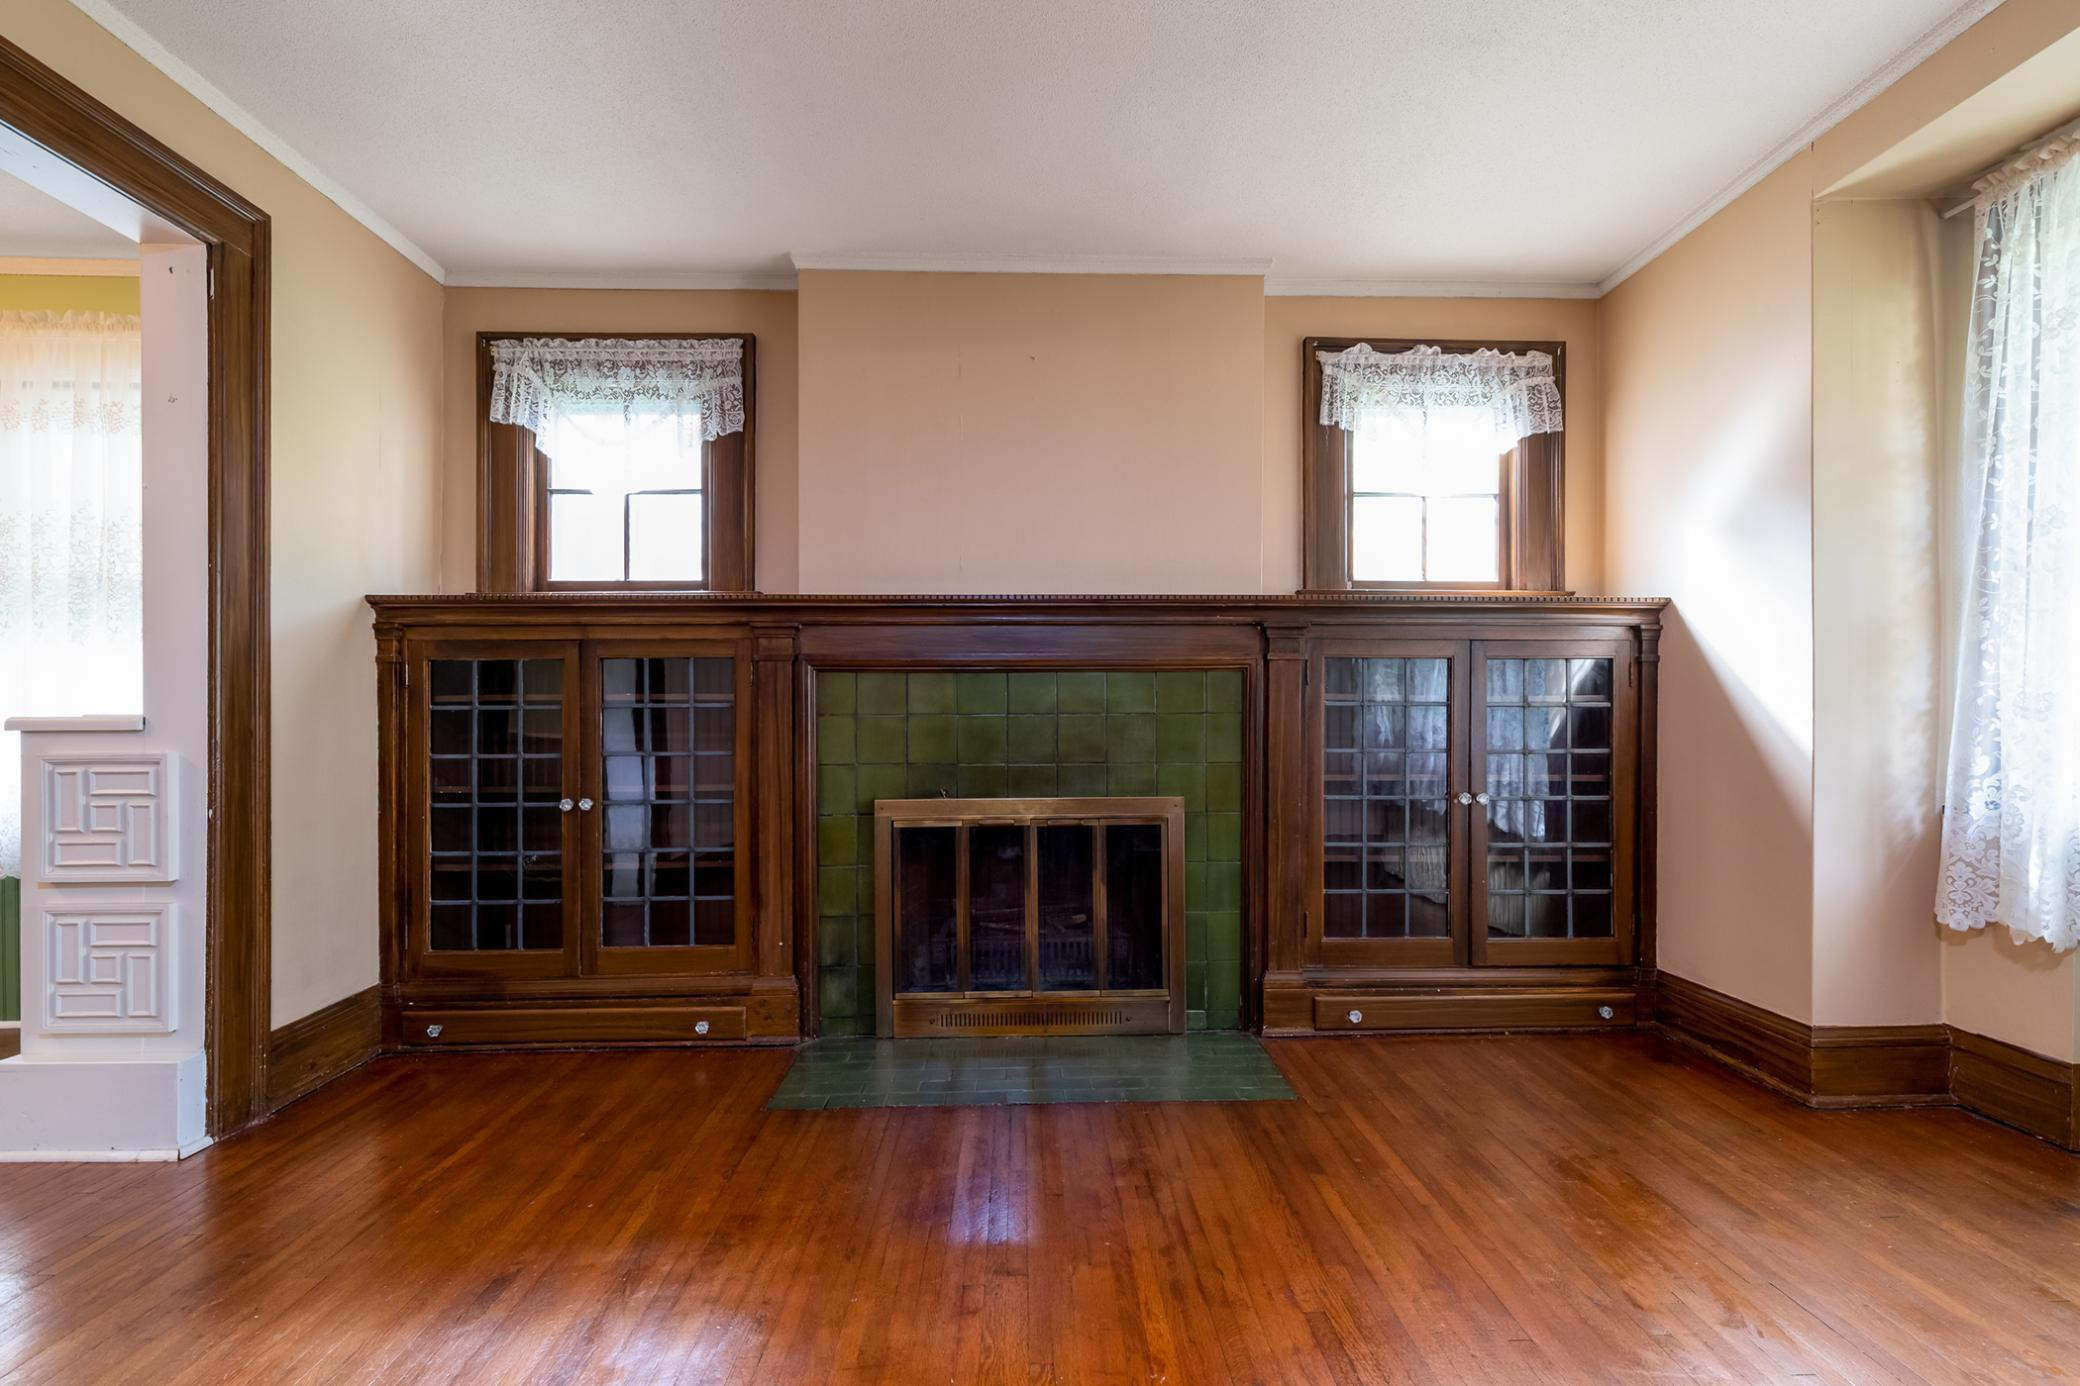 Living Room (Fireplace has not been used fLiving Room (Fireplace has not been used for years)or years)